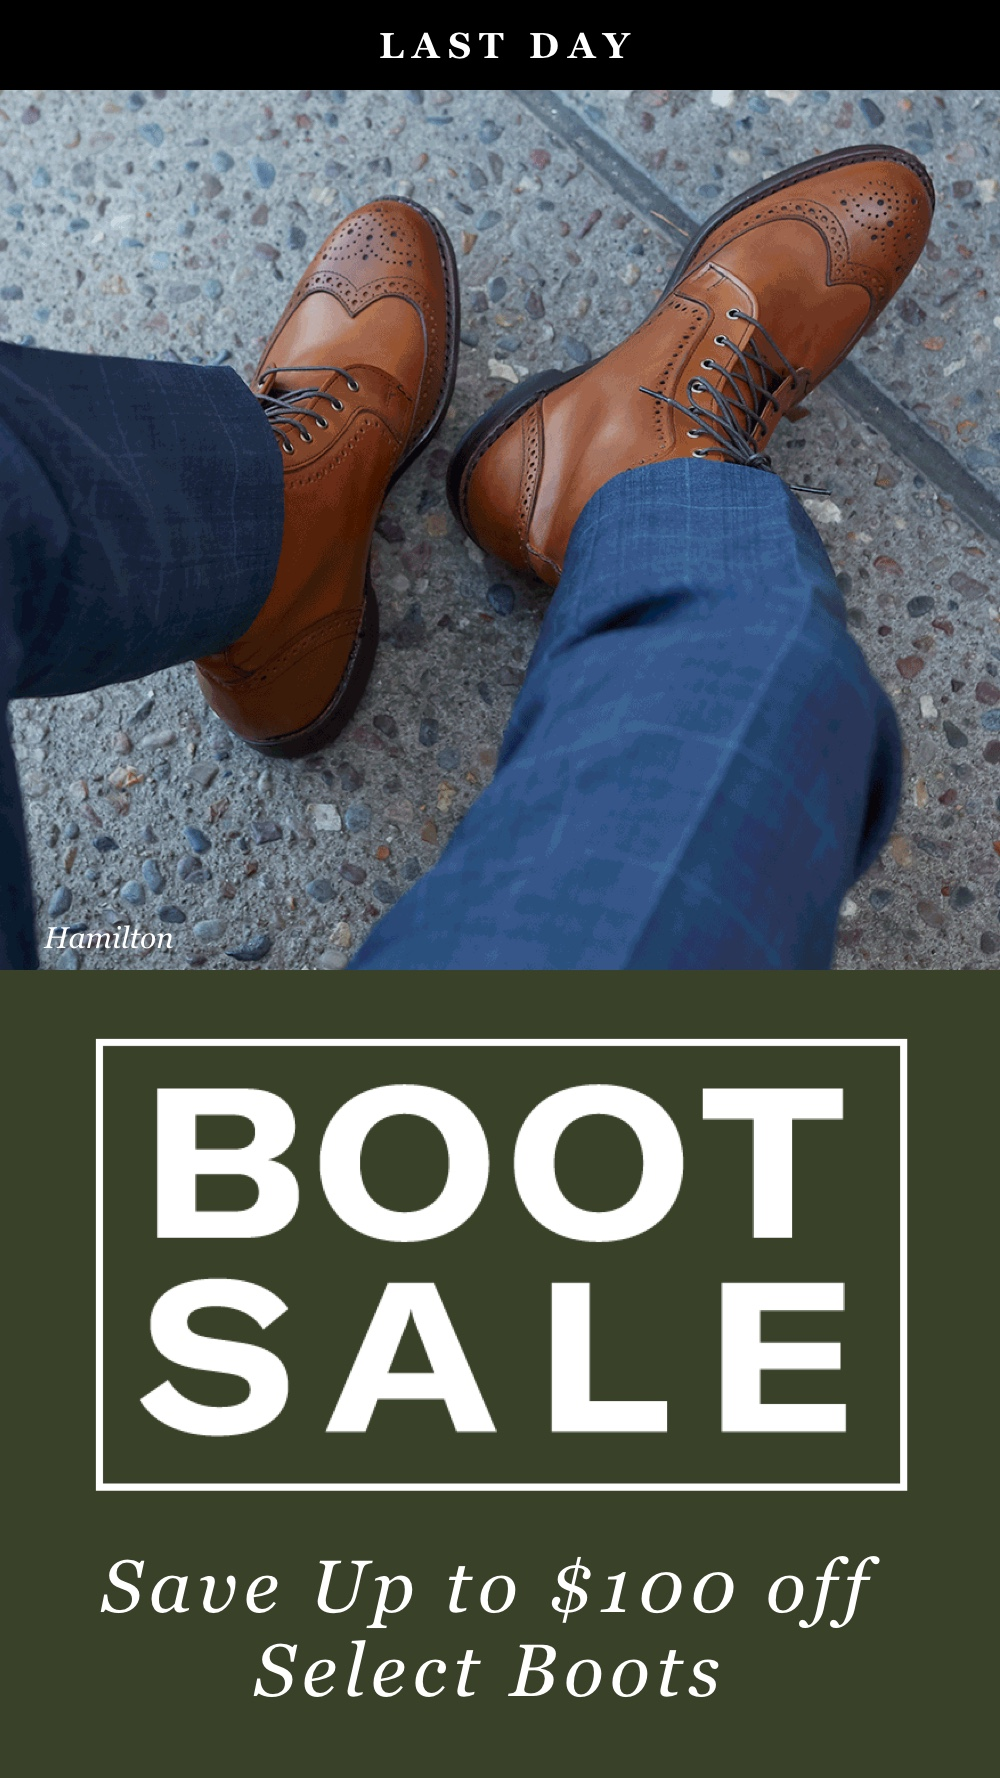 Last Day - Boot Sale - Save Up To $100 Off Select Boots